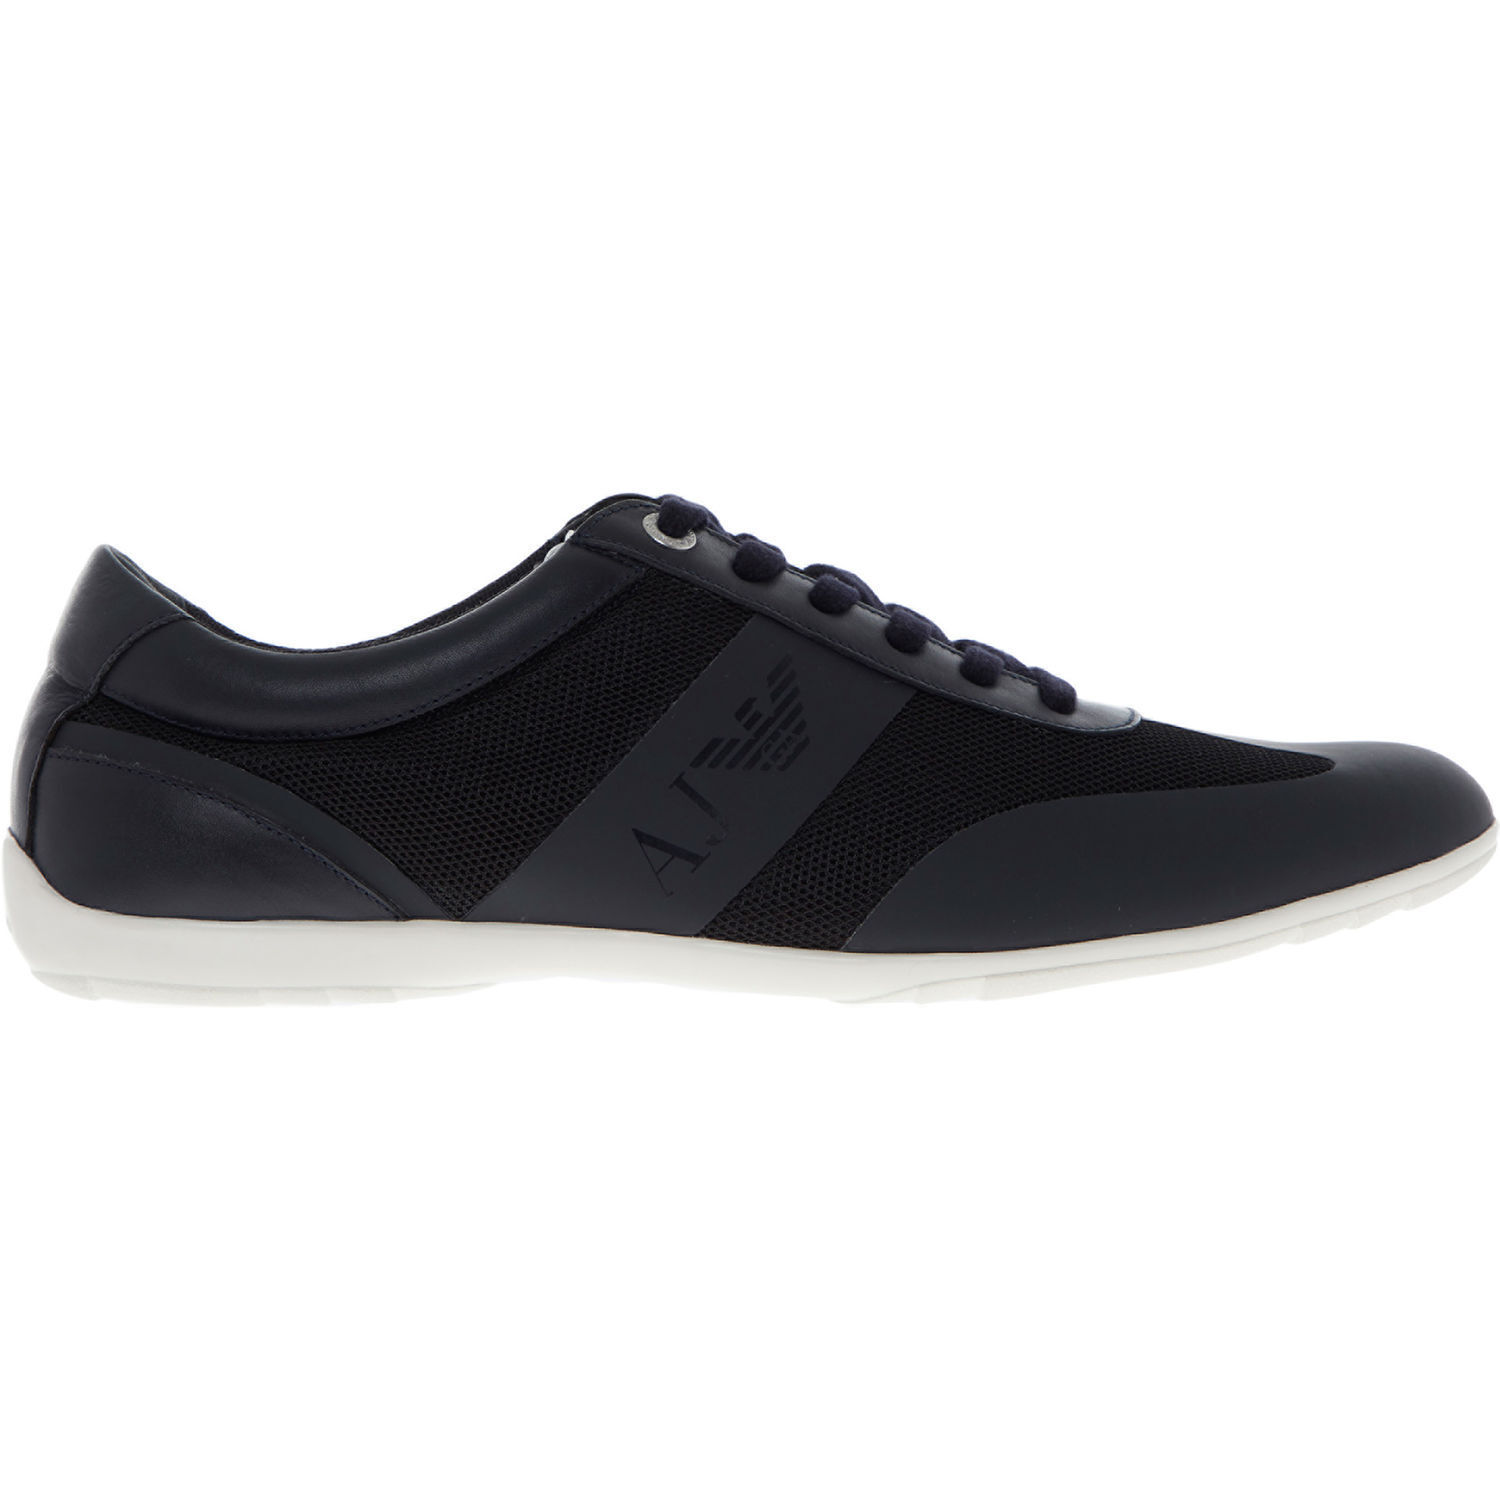 ARMANI JEANS Men's Navy Leather Low Risers Casual Trainers